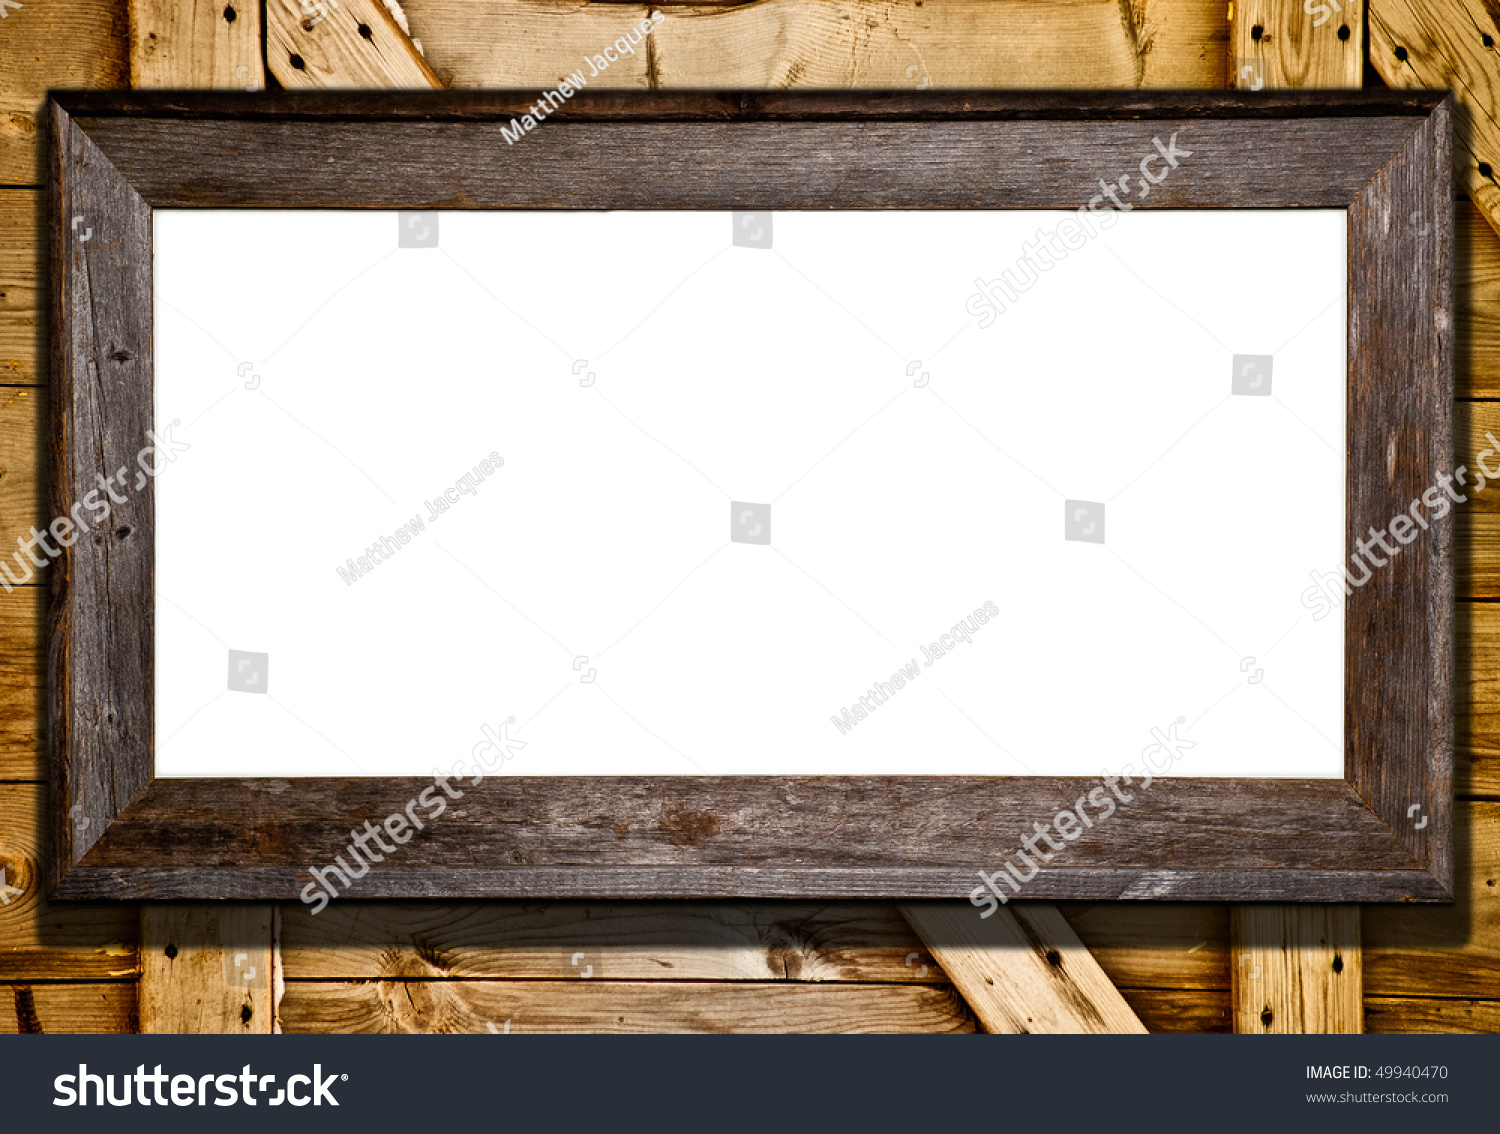 rustic wood frame against barn door or wood panel background blank white template for your